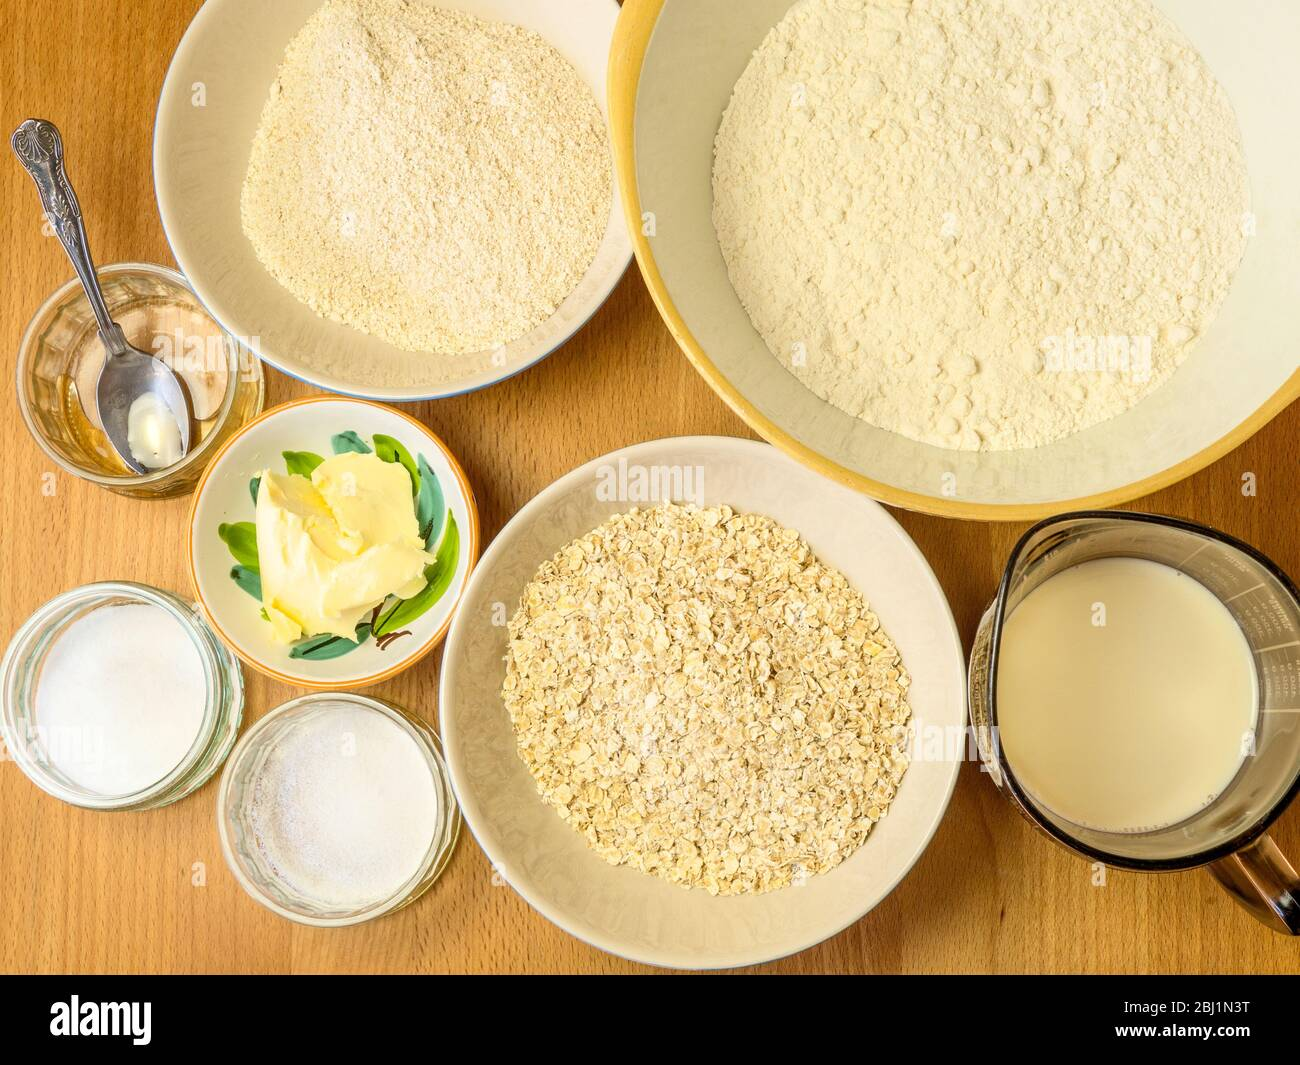 Ingredients for making oat bread on a kitchen table Stock Photo